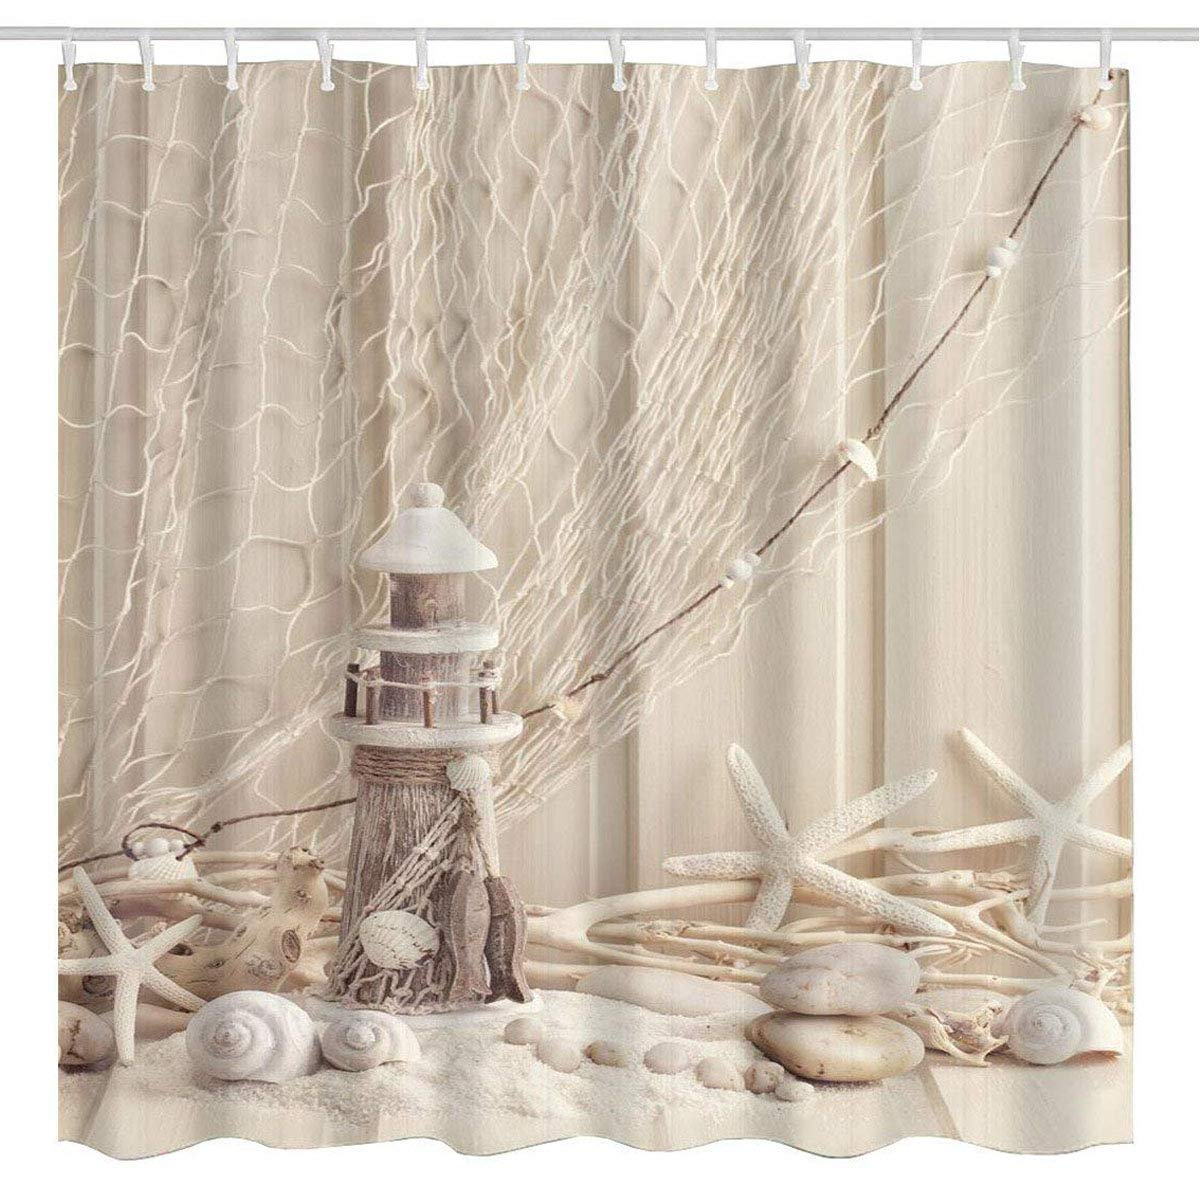 Nautical Fabric Shower Curtains Buy Broshan Nautical Seashell Decor Shower Curtain Fabric Coastal